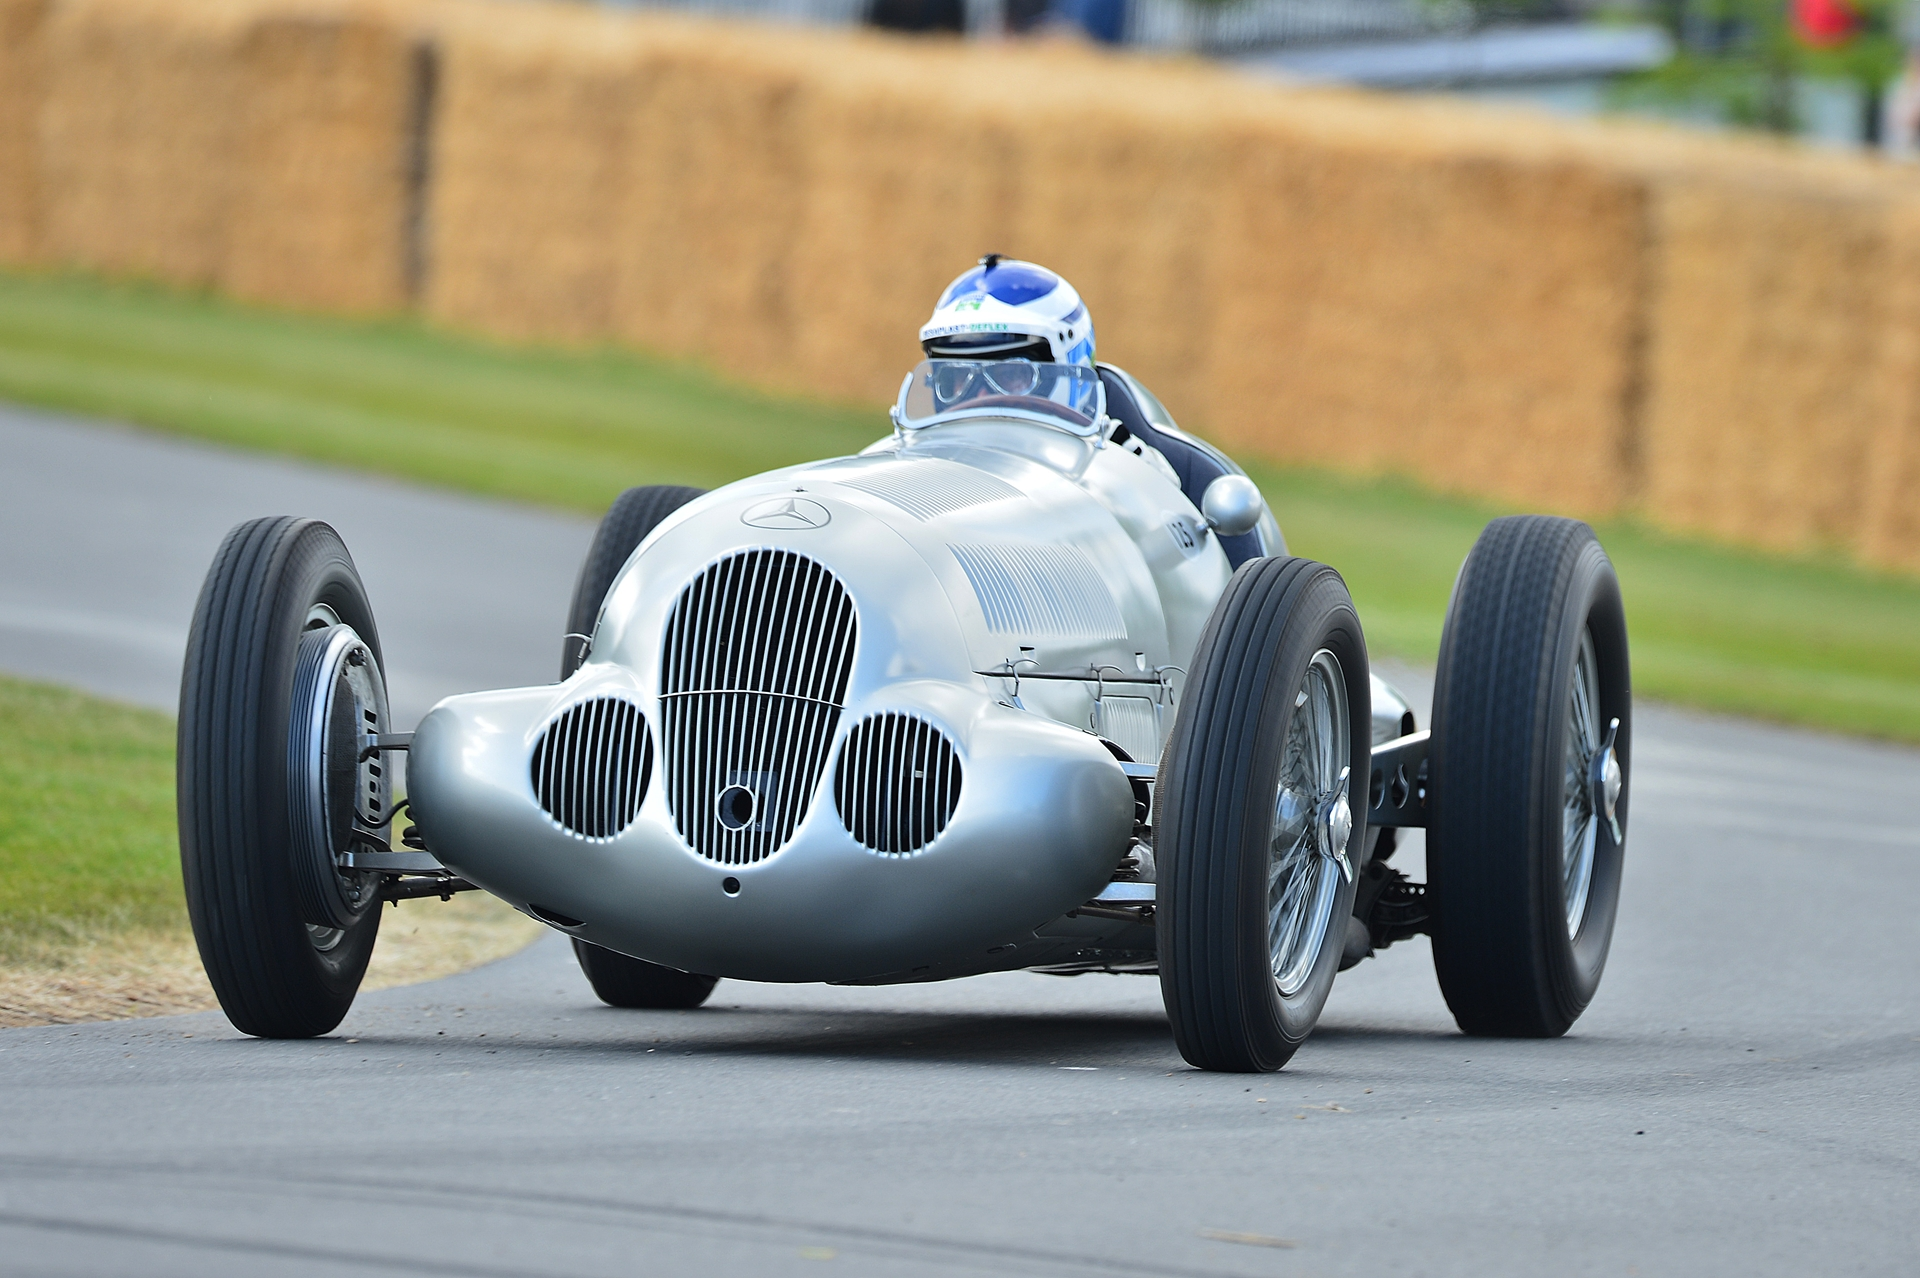 Goodwood-Mercedes-Benz-04